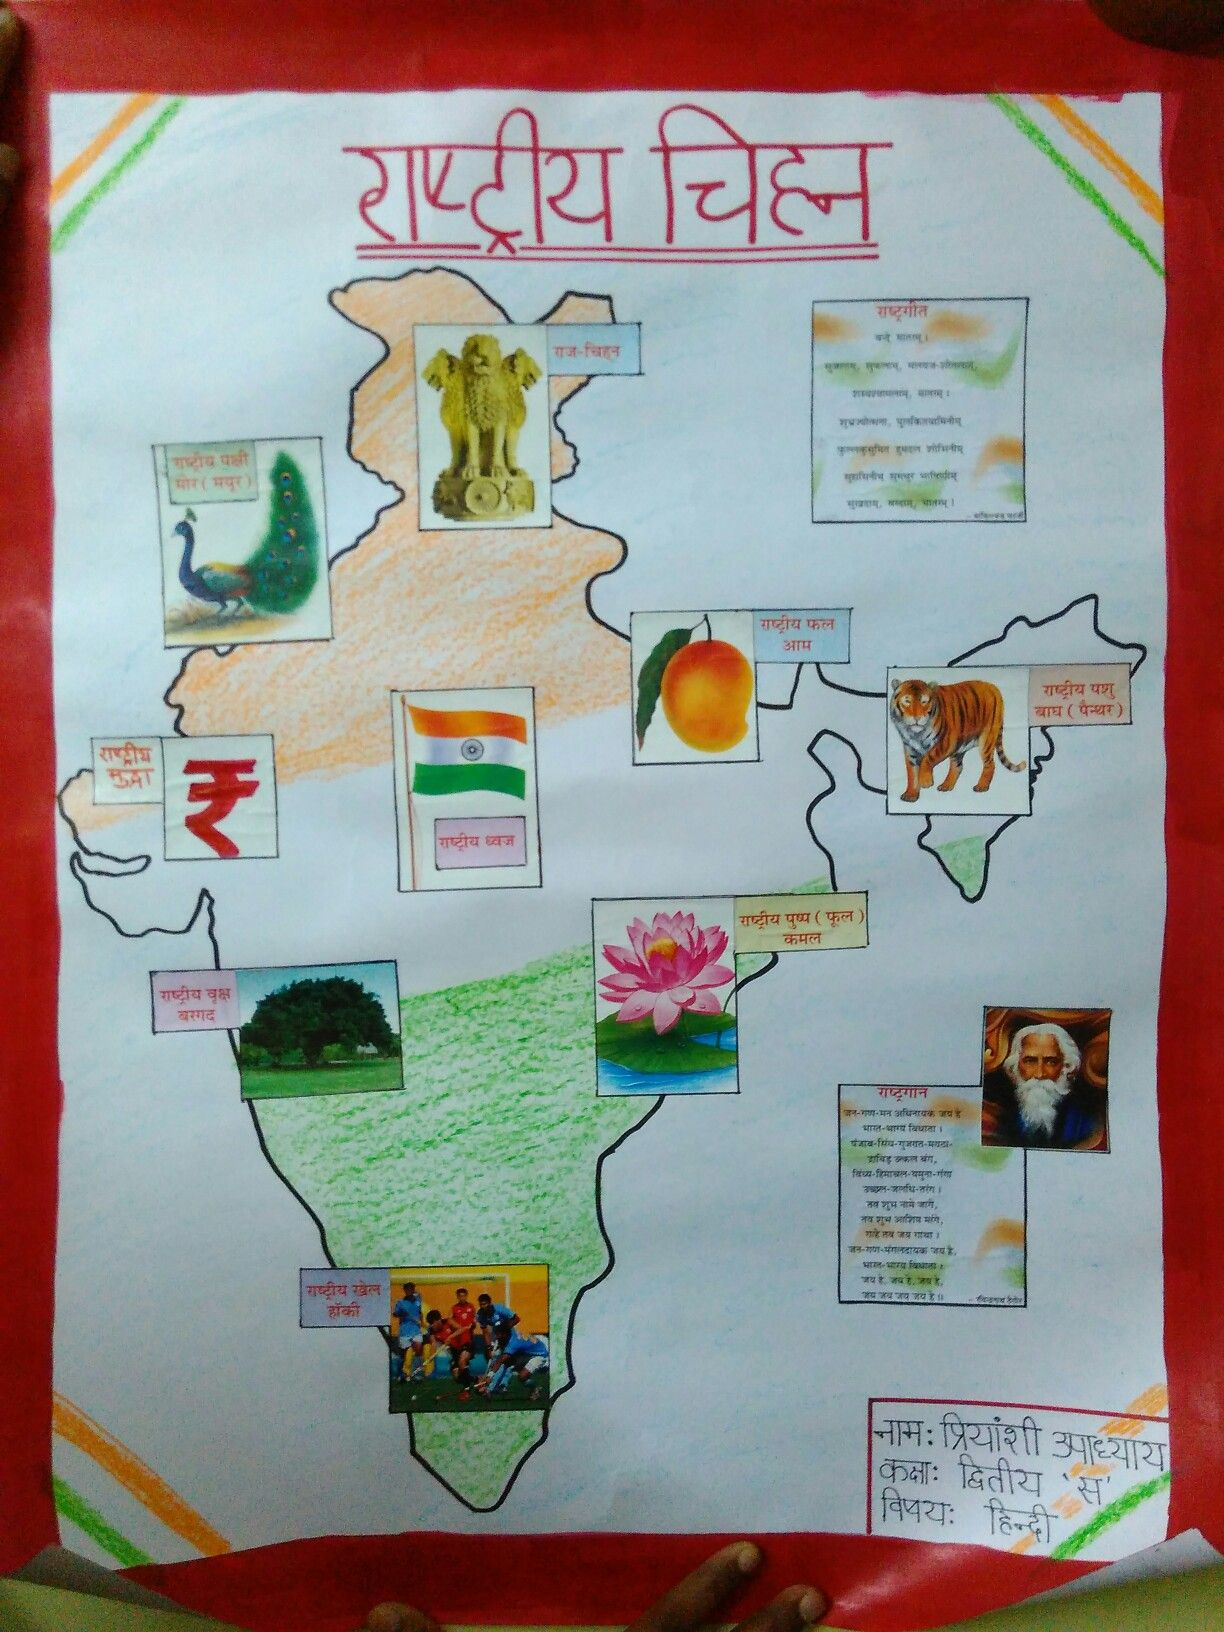 National Symbols Of India With Images